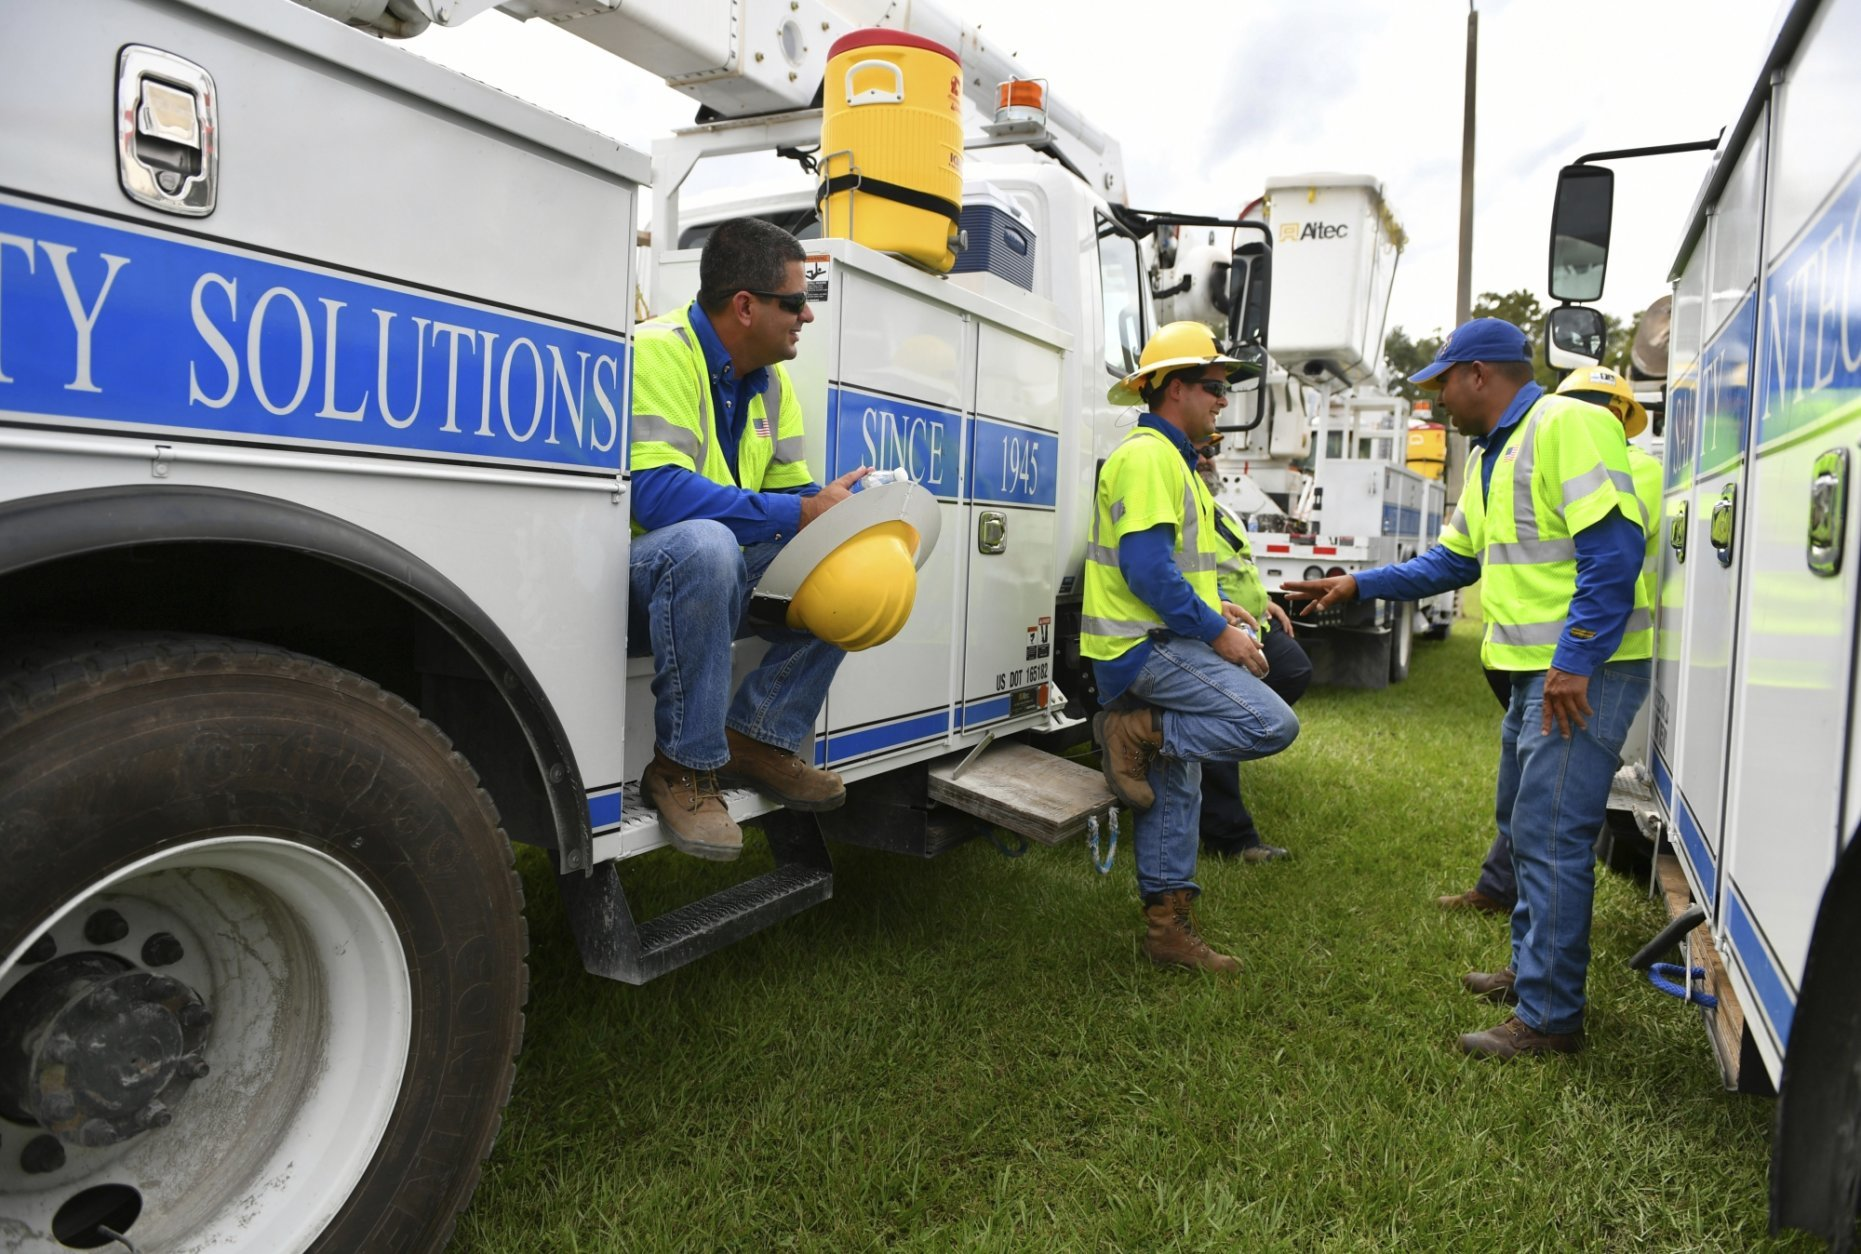 Pike Electric power restoration workers wait instructions after arriving at the Saraosta Fairgrounds on Tuesday, Oct. 9, 2018. Florida Power & Light is staging contractors in Sarasota, Fla, in advance of Hurricane Michael's expected landfall in the Florida panhandle later this week. (Mike Lang/Sarasota Herald-Tribune via AP)